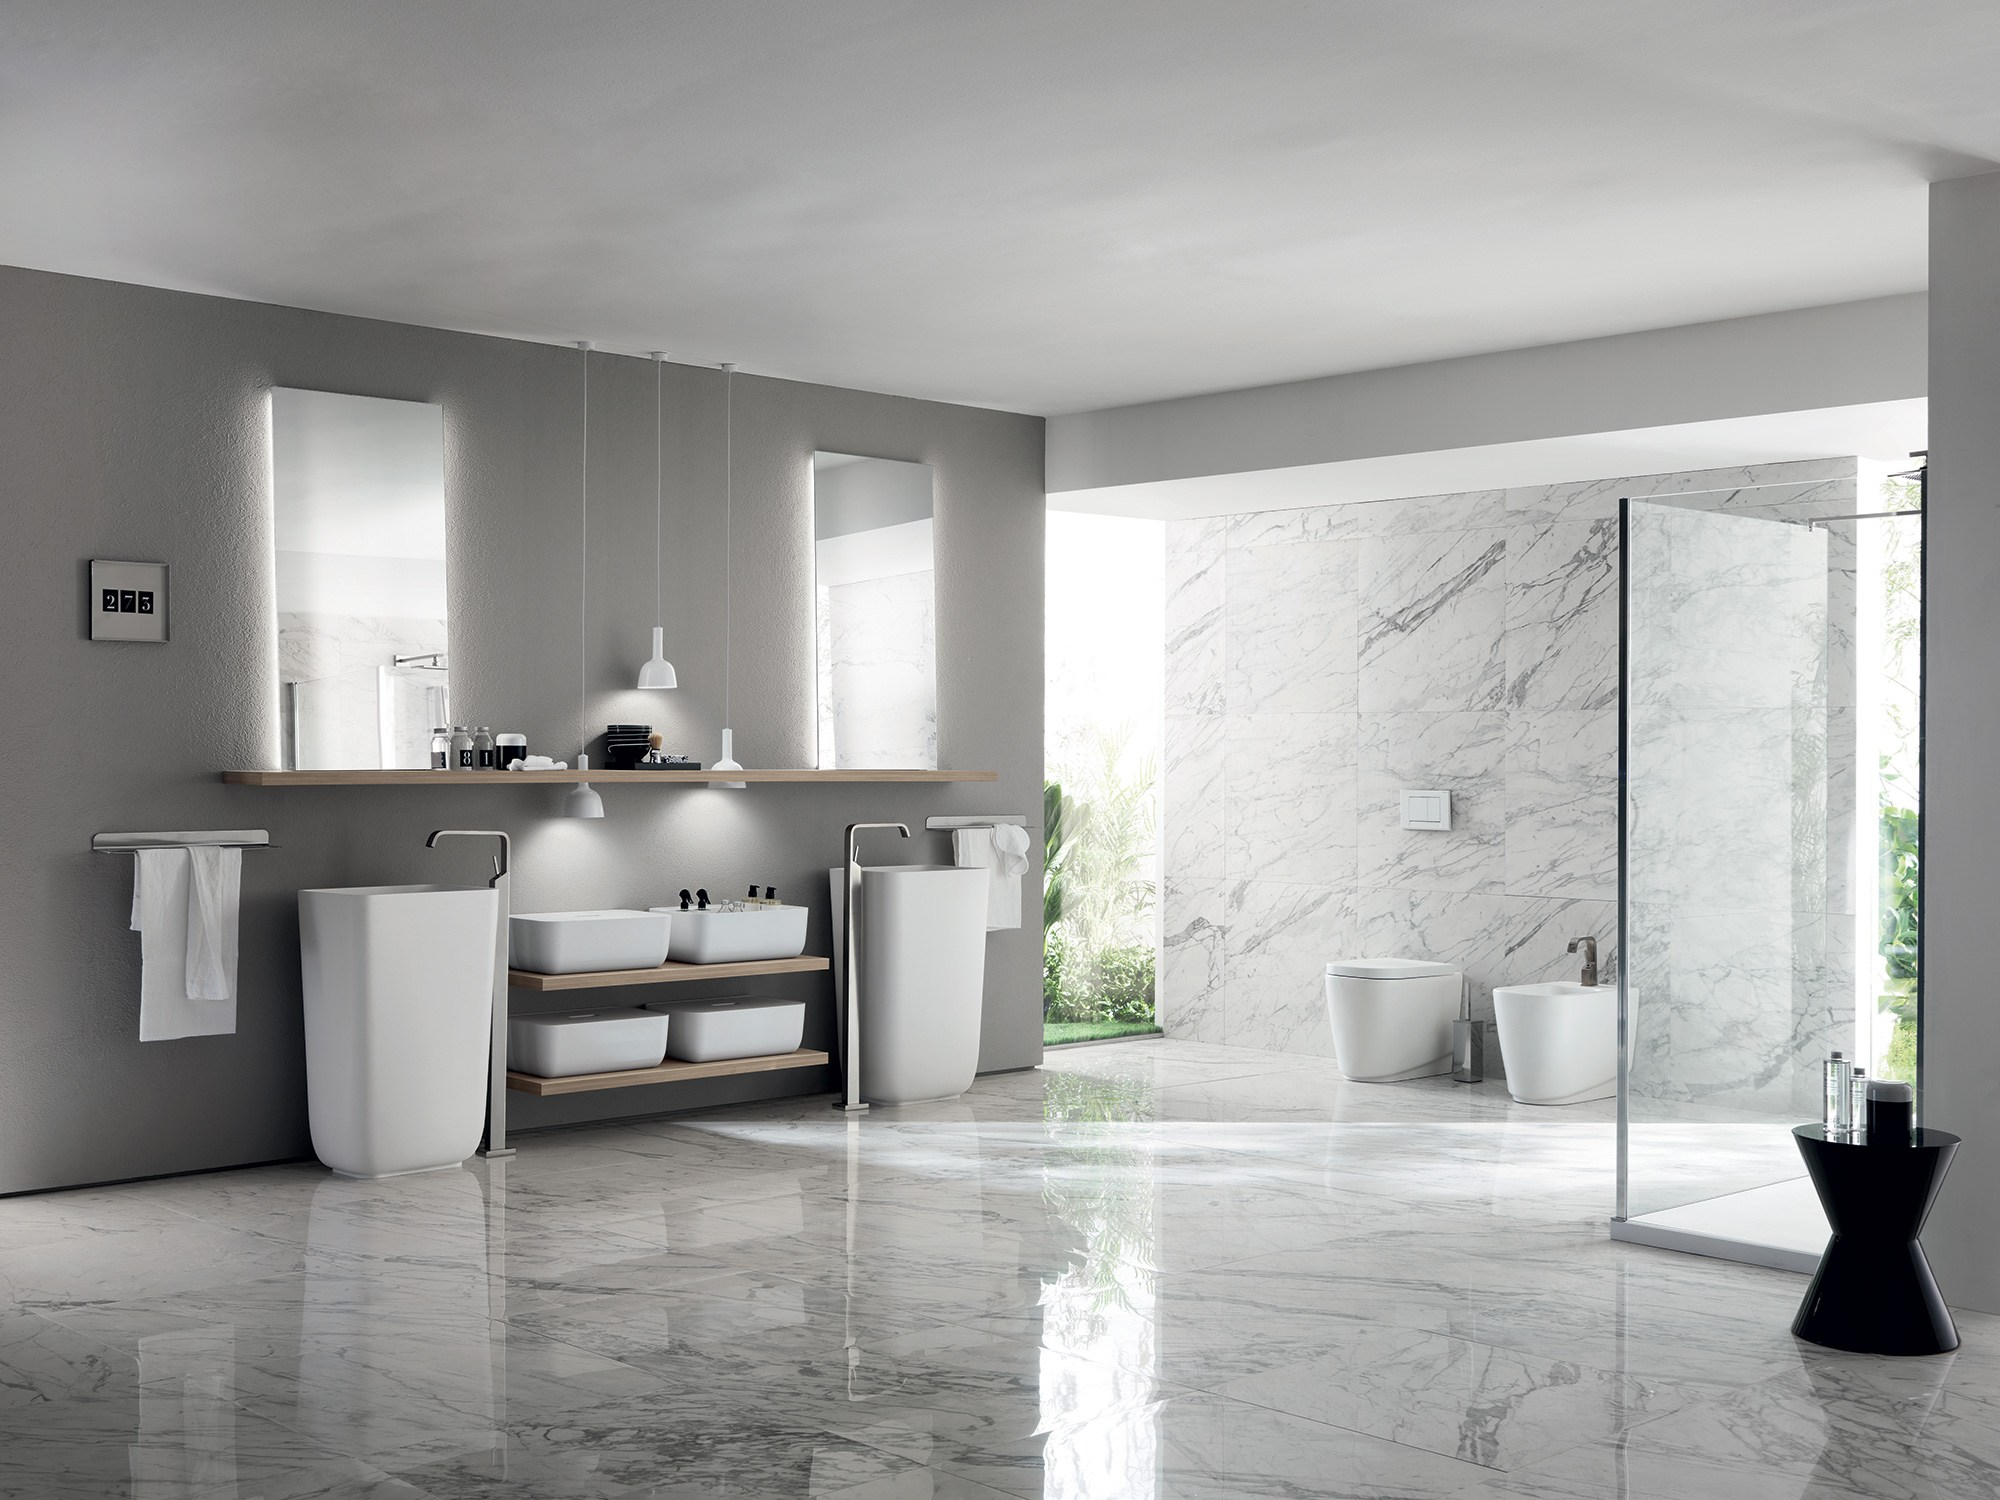 Bathroom furniture set qi by scavolini bathrooms design nendo for Bagno grande